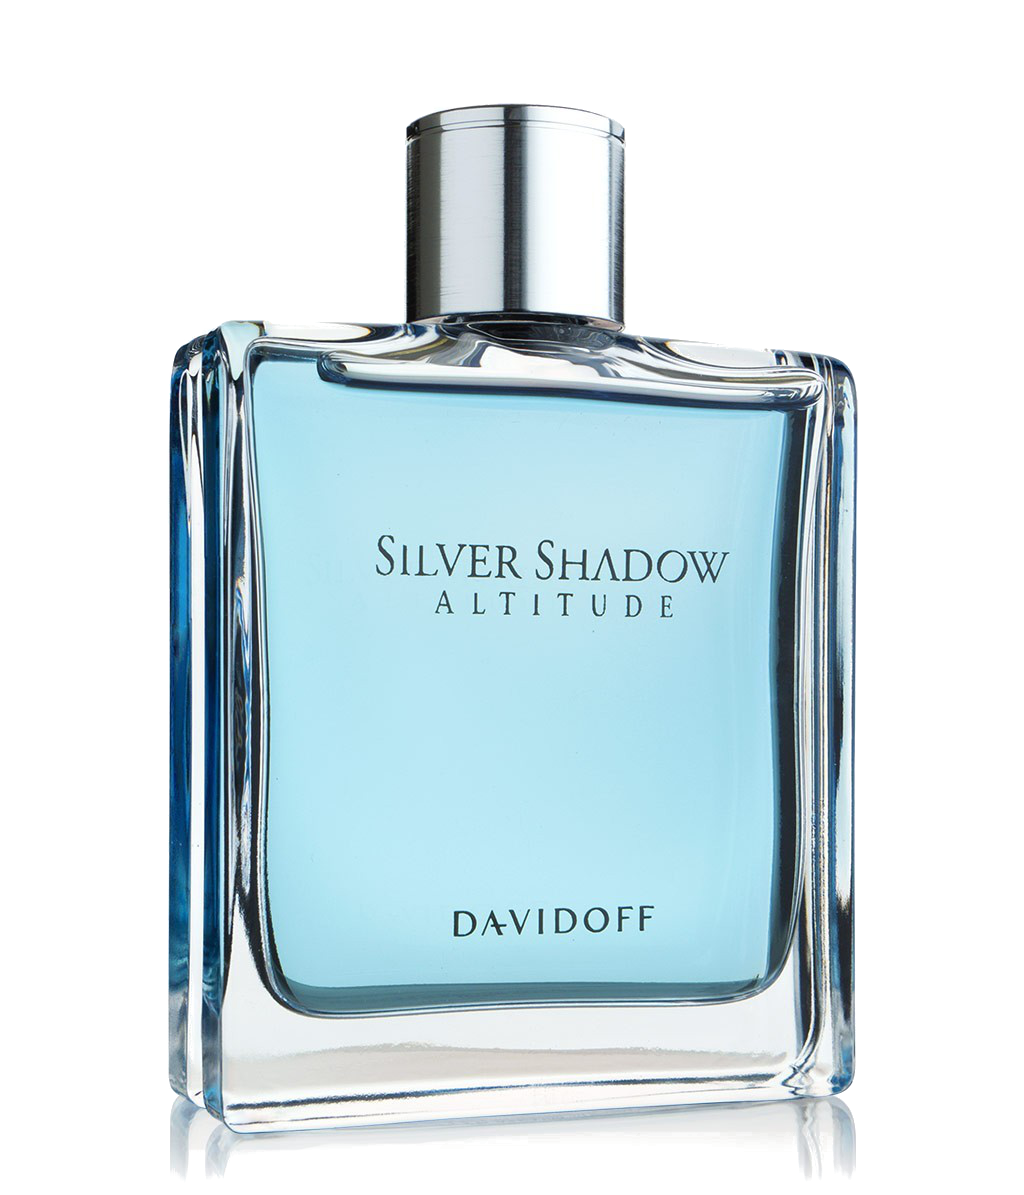 DAVIDOFF - SILVER SHADOW ALTITUDE EDT 100 ML